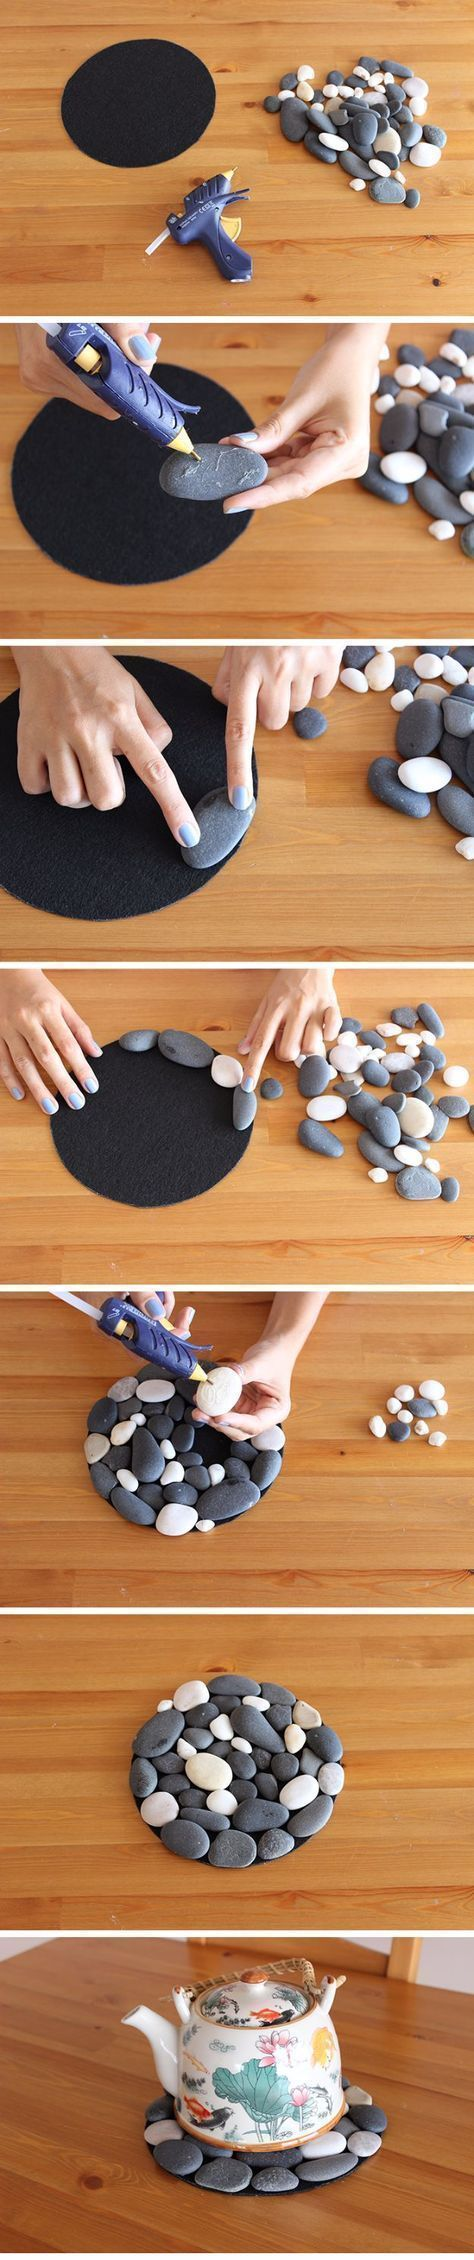 Best Country Crafts For The Home - Pebble Coaster - Cool and Easy DIY Craft Projects for Home Decor, Dollar Store Gifts, Furniture and Kitchen Accessories - Creative Wall Art Ideas, Rustic and Farmhouse Looks, Shabby Chic and Vintage Decor To Make and Sell http://diyjoy.com/country-crafts-for-the-home #artsandcraftsstores, #EverydayArtsandCrafts #coasterfurniturehome